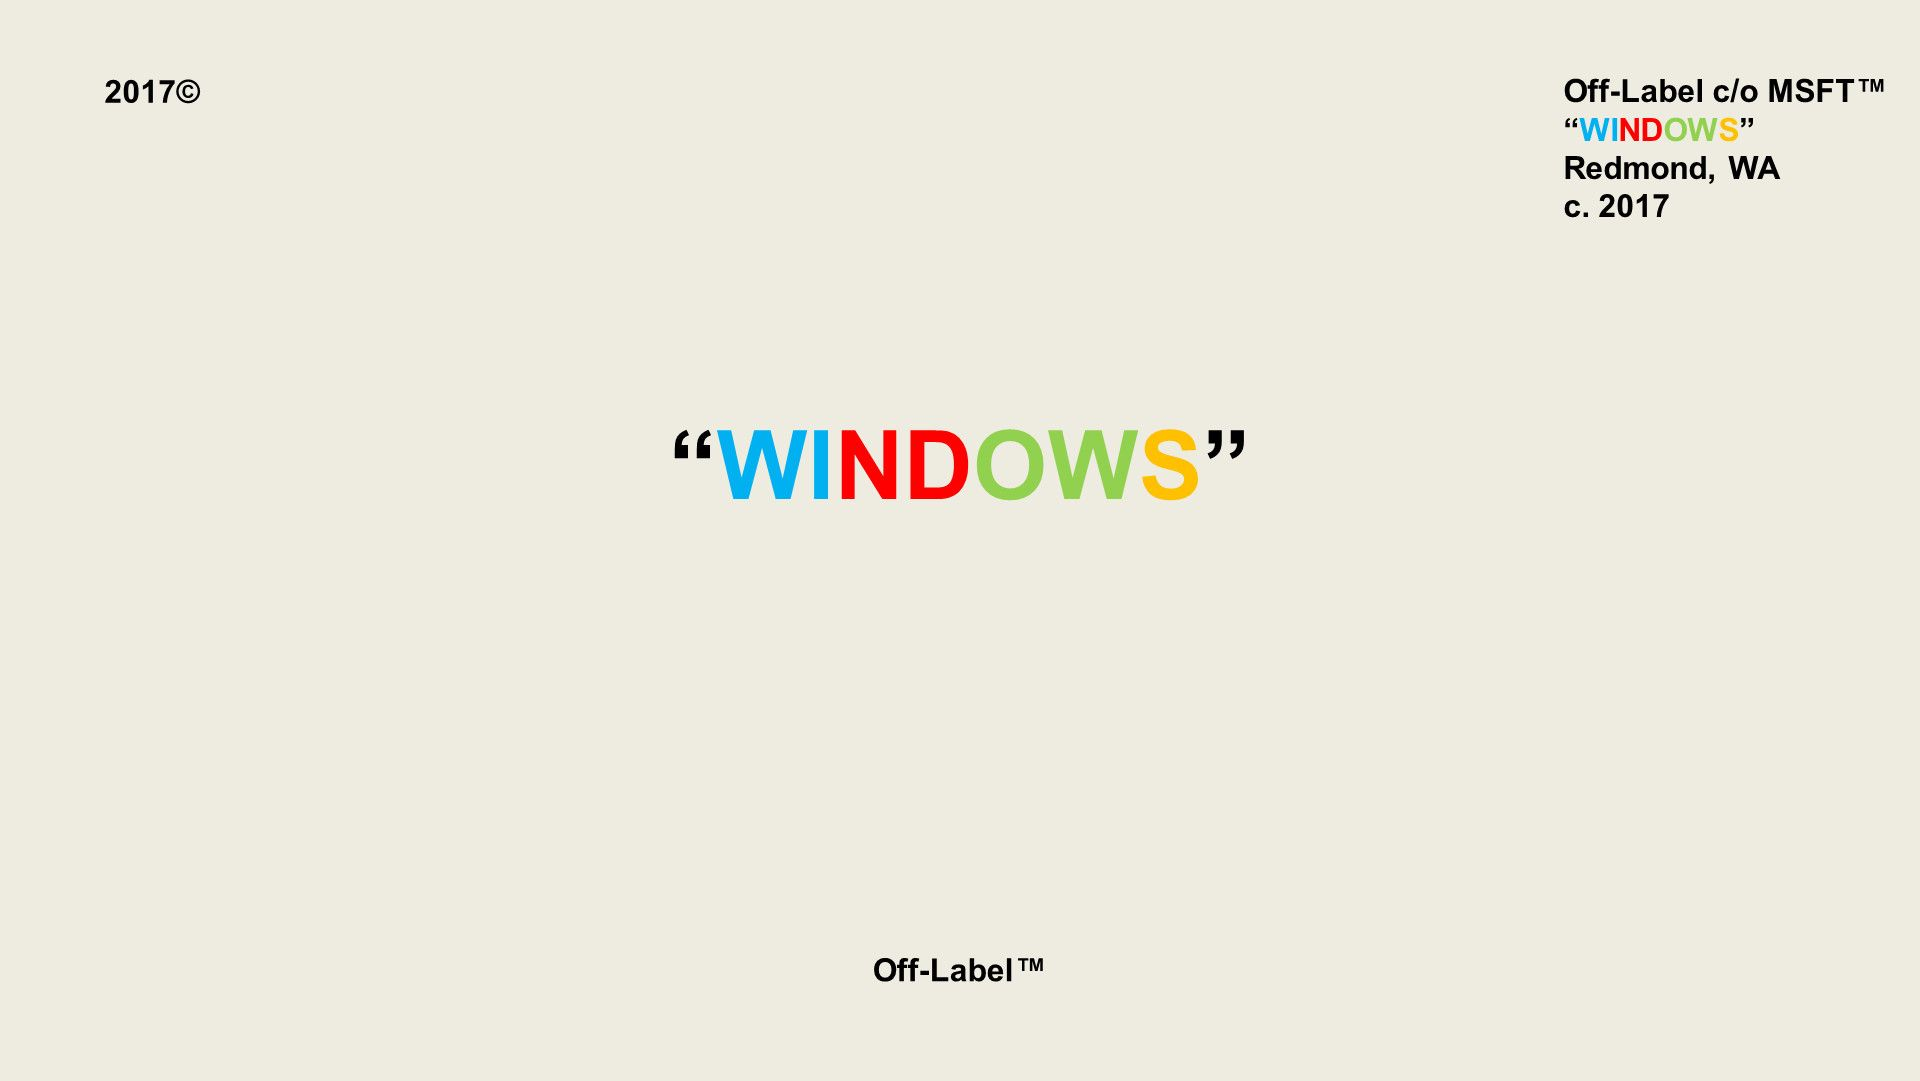 70 Off White Wallpapers On Wallpaperplay Laptop Wallpaper Laptop Wallpaper Desktop Wallpapers Hype Wallpaper